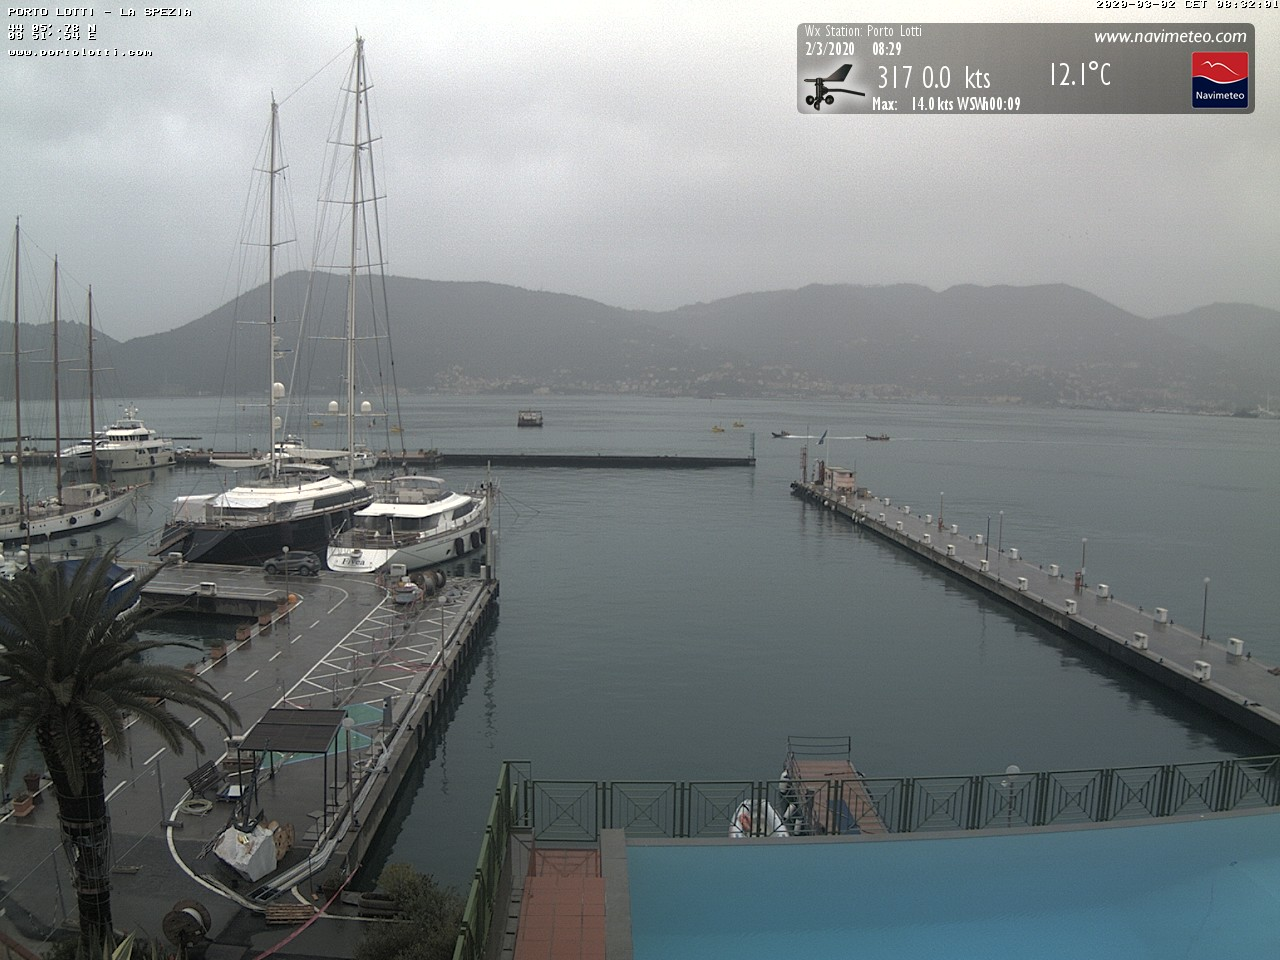 Webcam Portolotti La Spezia